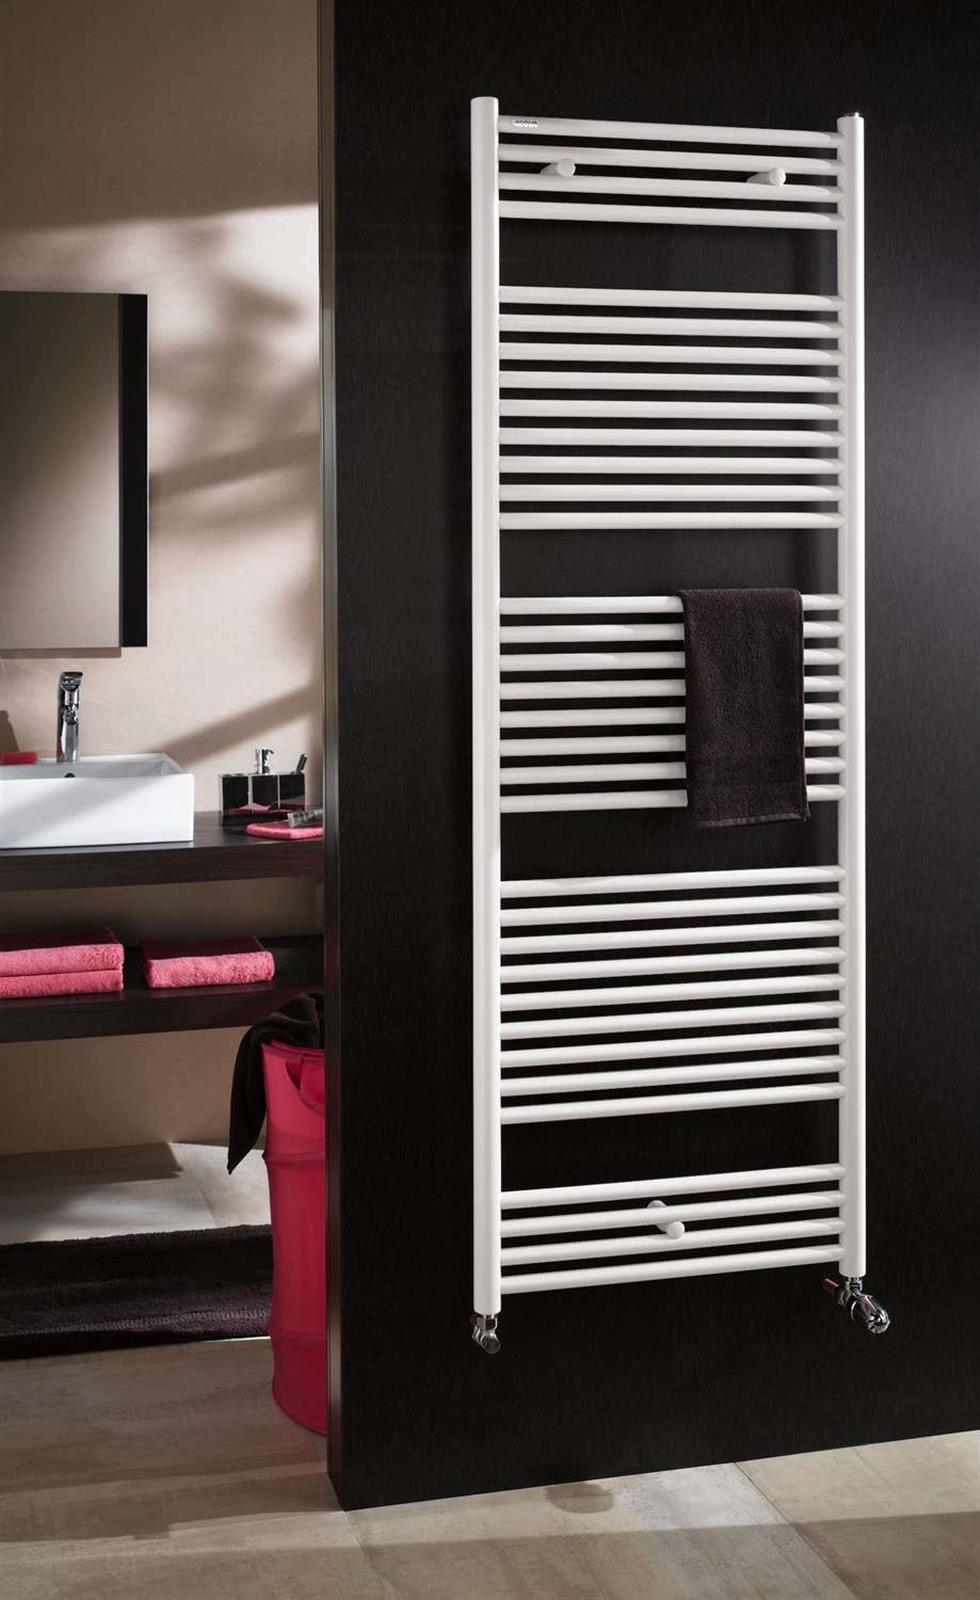 radiateur s che serviettes sym trique atoll spa slo chauffage central acova. Black Bedroom Furniture Sets. Home Design Ideas